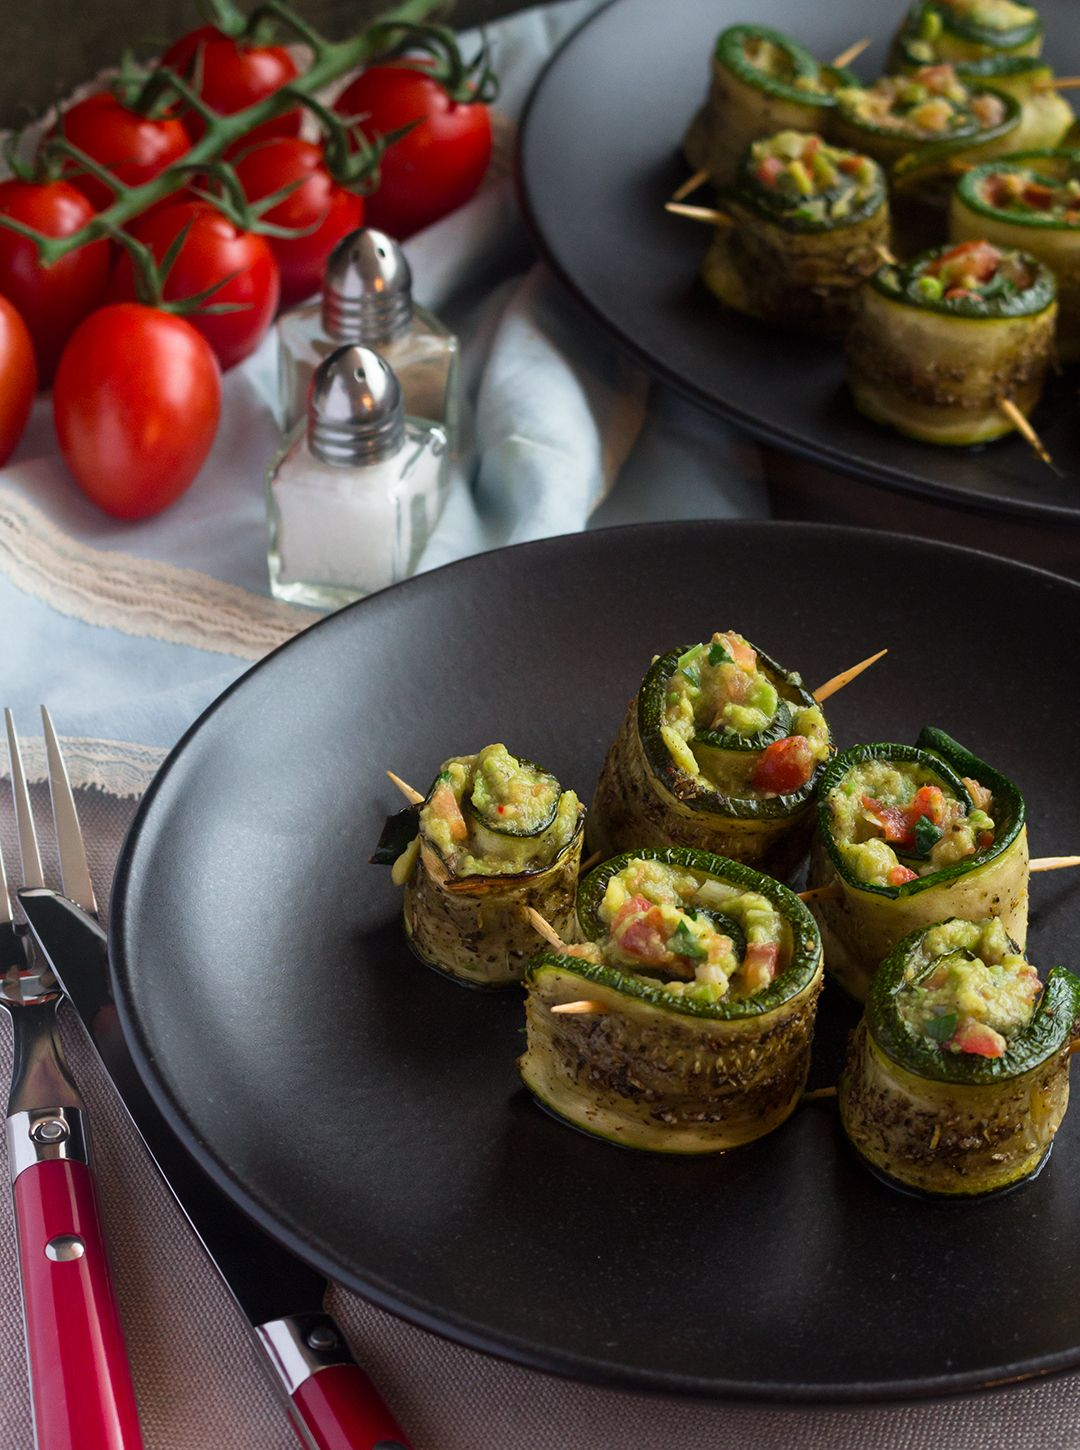 Roasted Zucchini Rolls with Guacamole Filling.